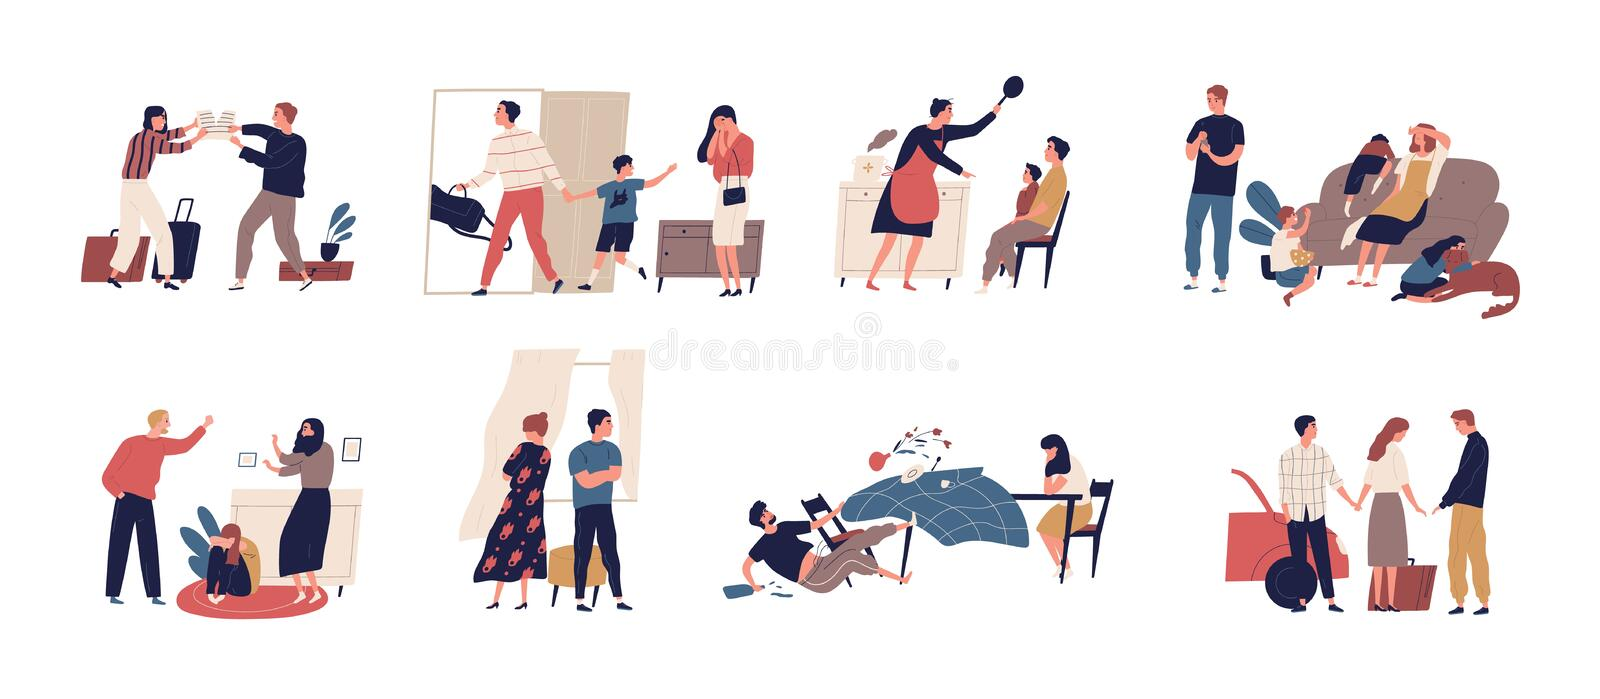 Collection of scenes of family conflict or relationship problem with unhappy married couples and children. Bundle of royalty free illustration